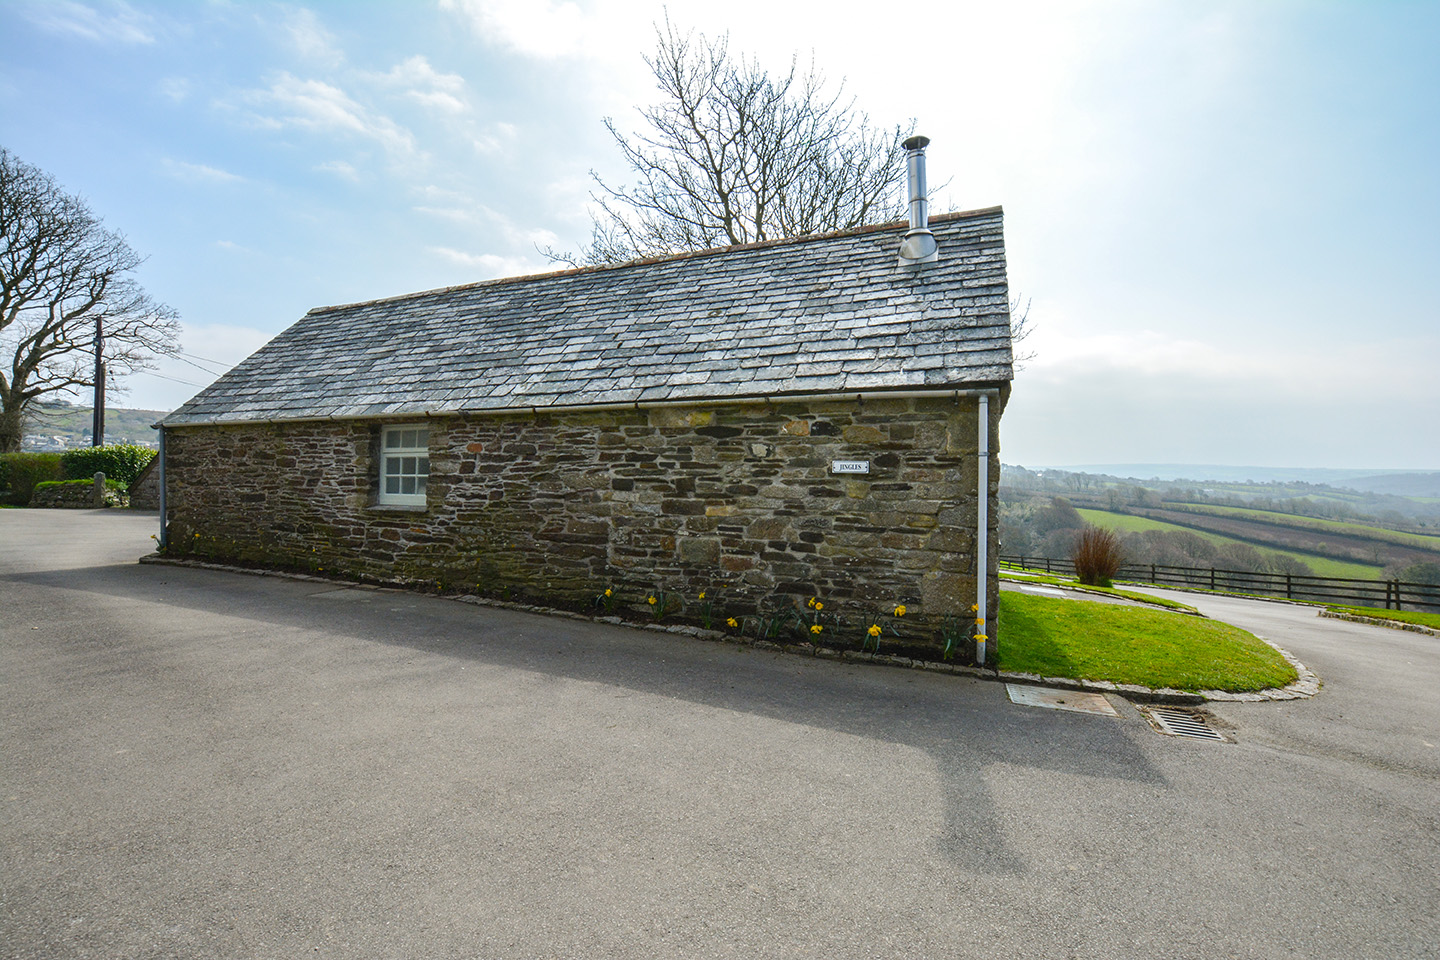 The outside of Jingles luxury self catering holiday cottage at Penrose Burden in North Cornwall near Bodmin Moor01.jpg